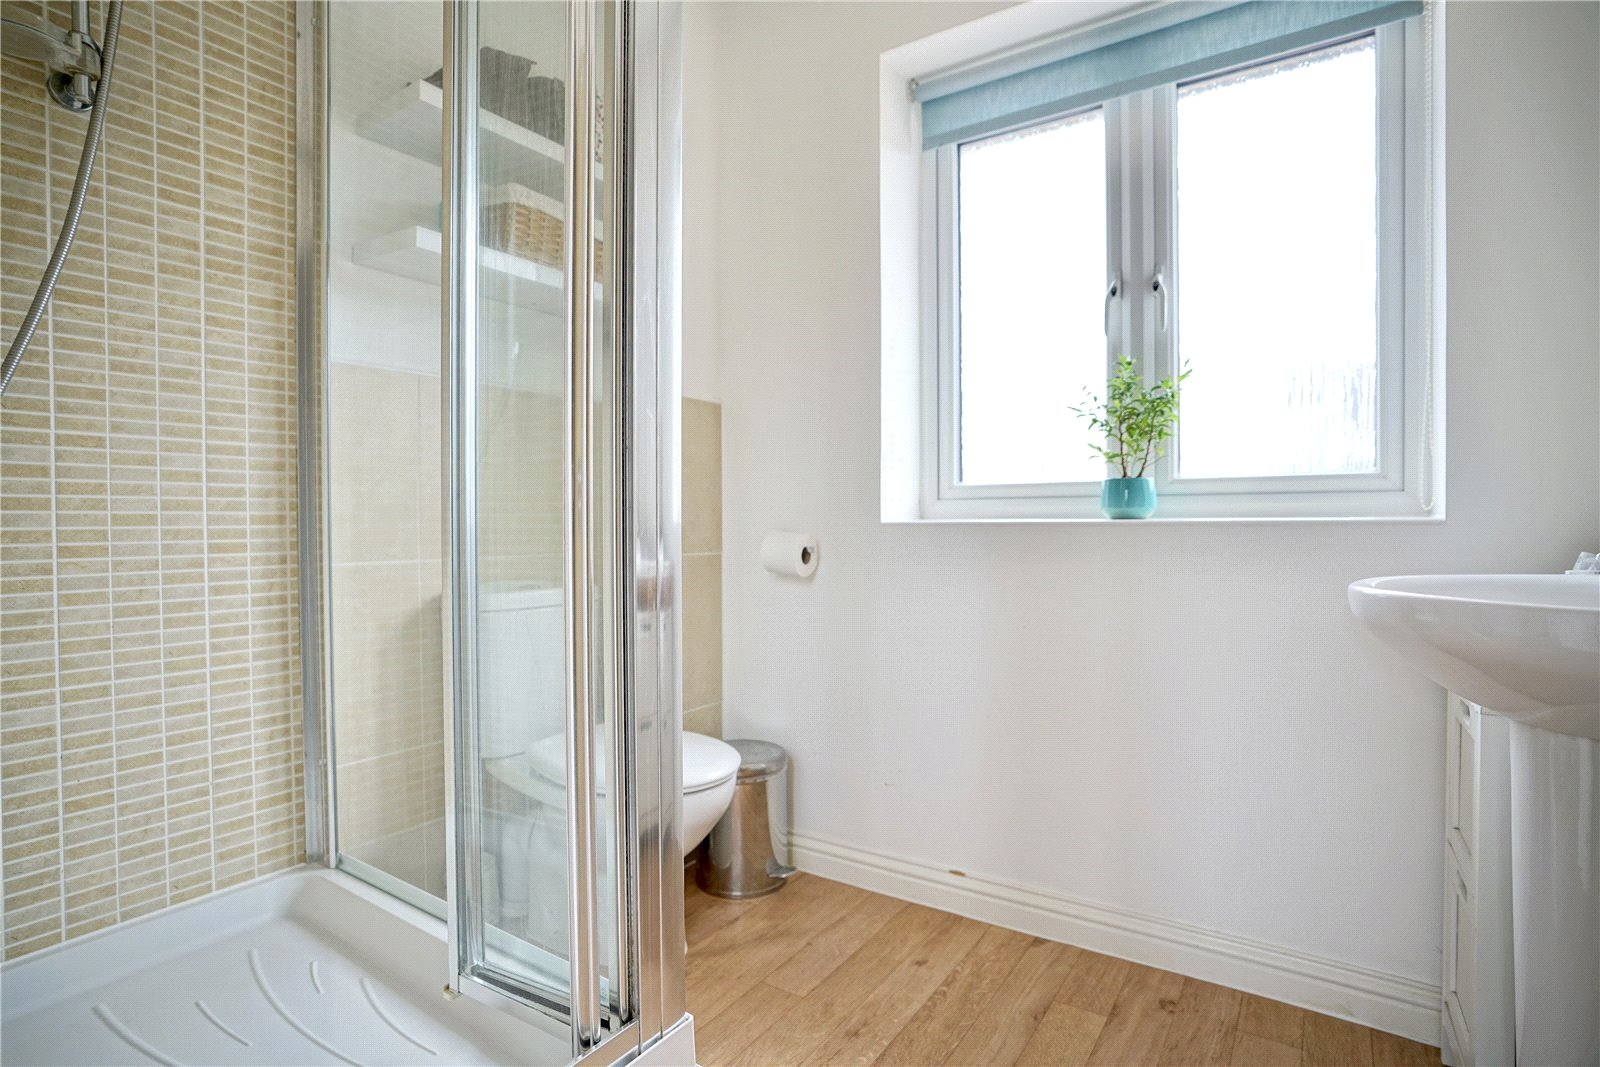 3 bed house for sale in St. Ives, PE27 5DL  - Property Image 7